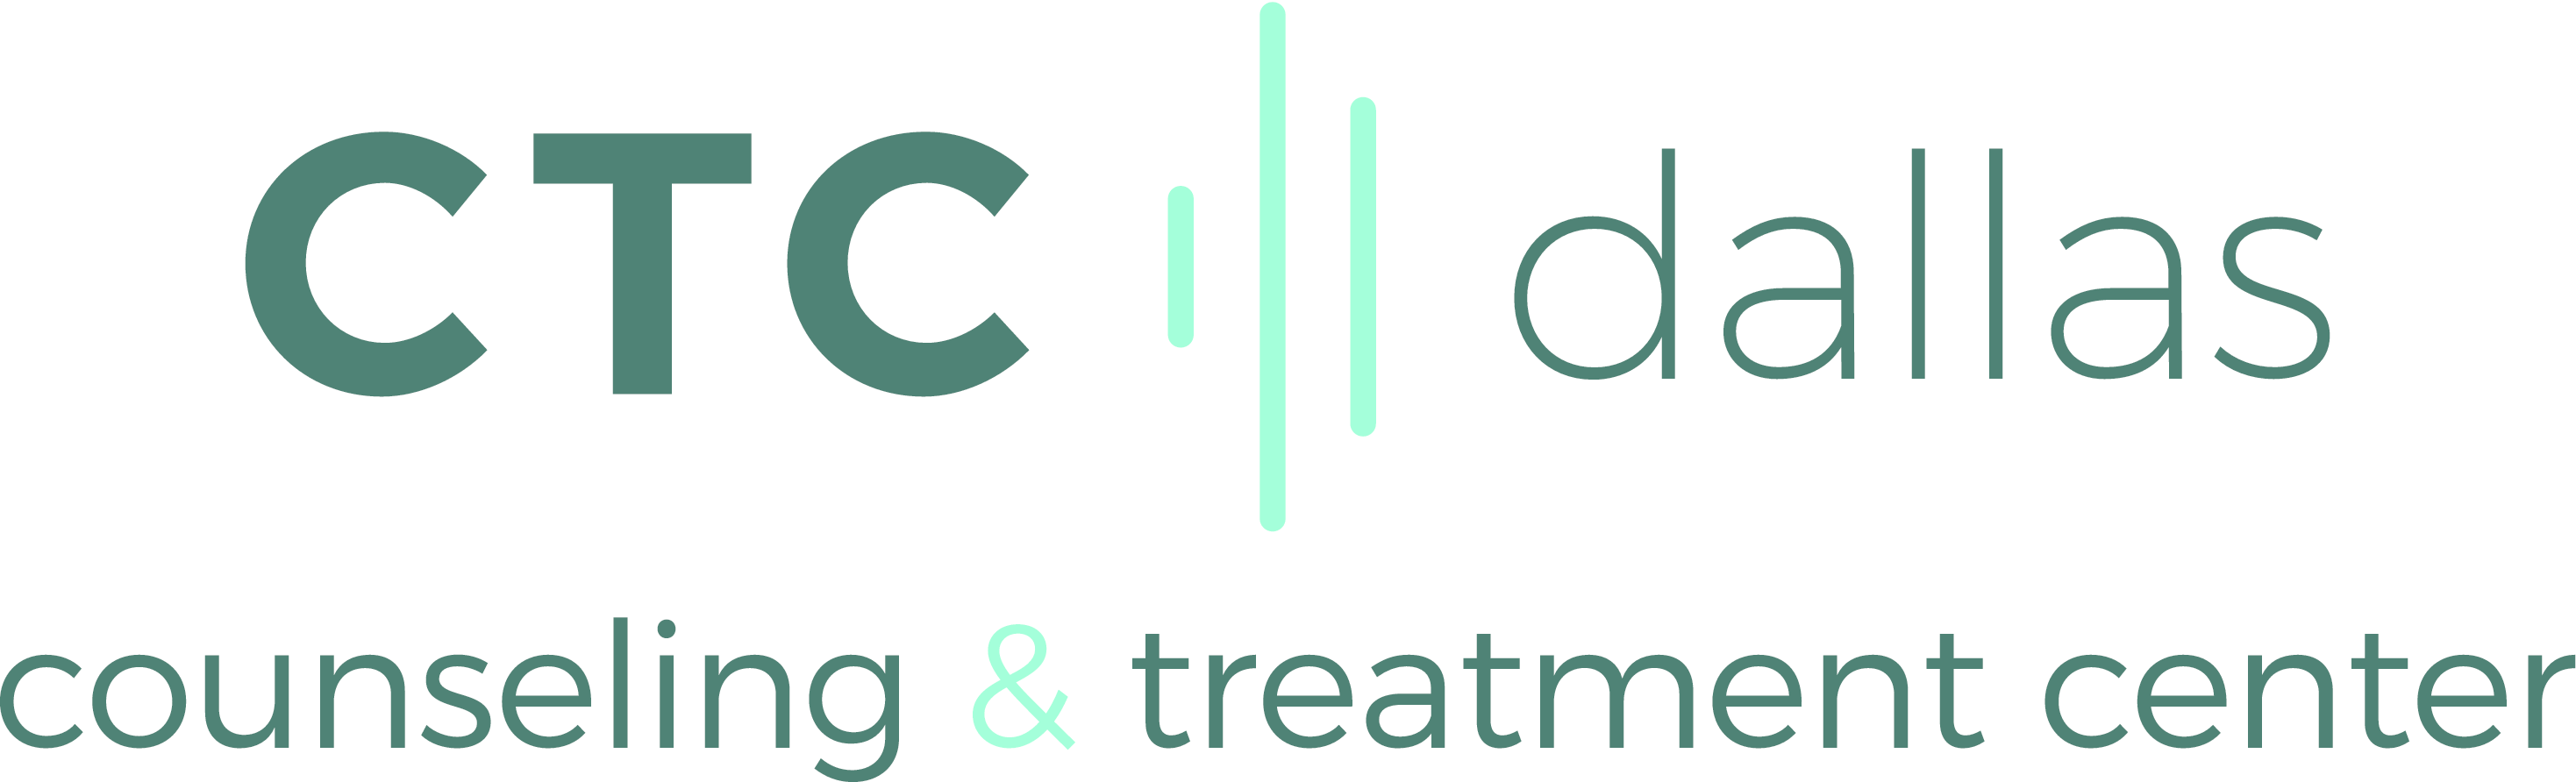 dallas counseling and treatment center logo